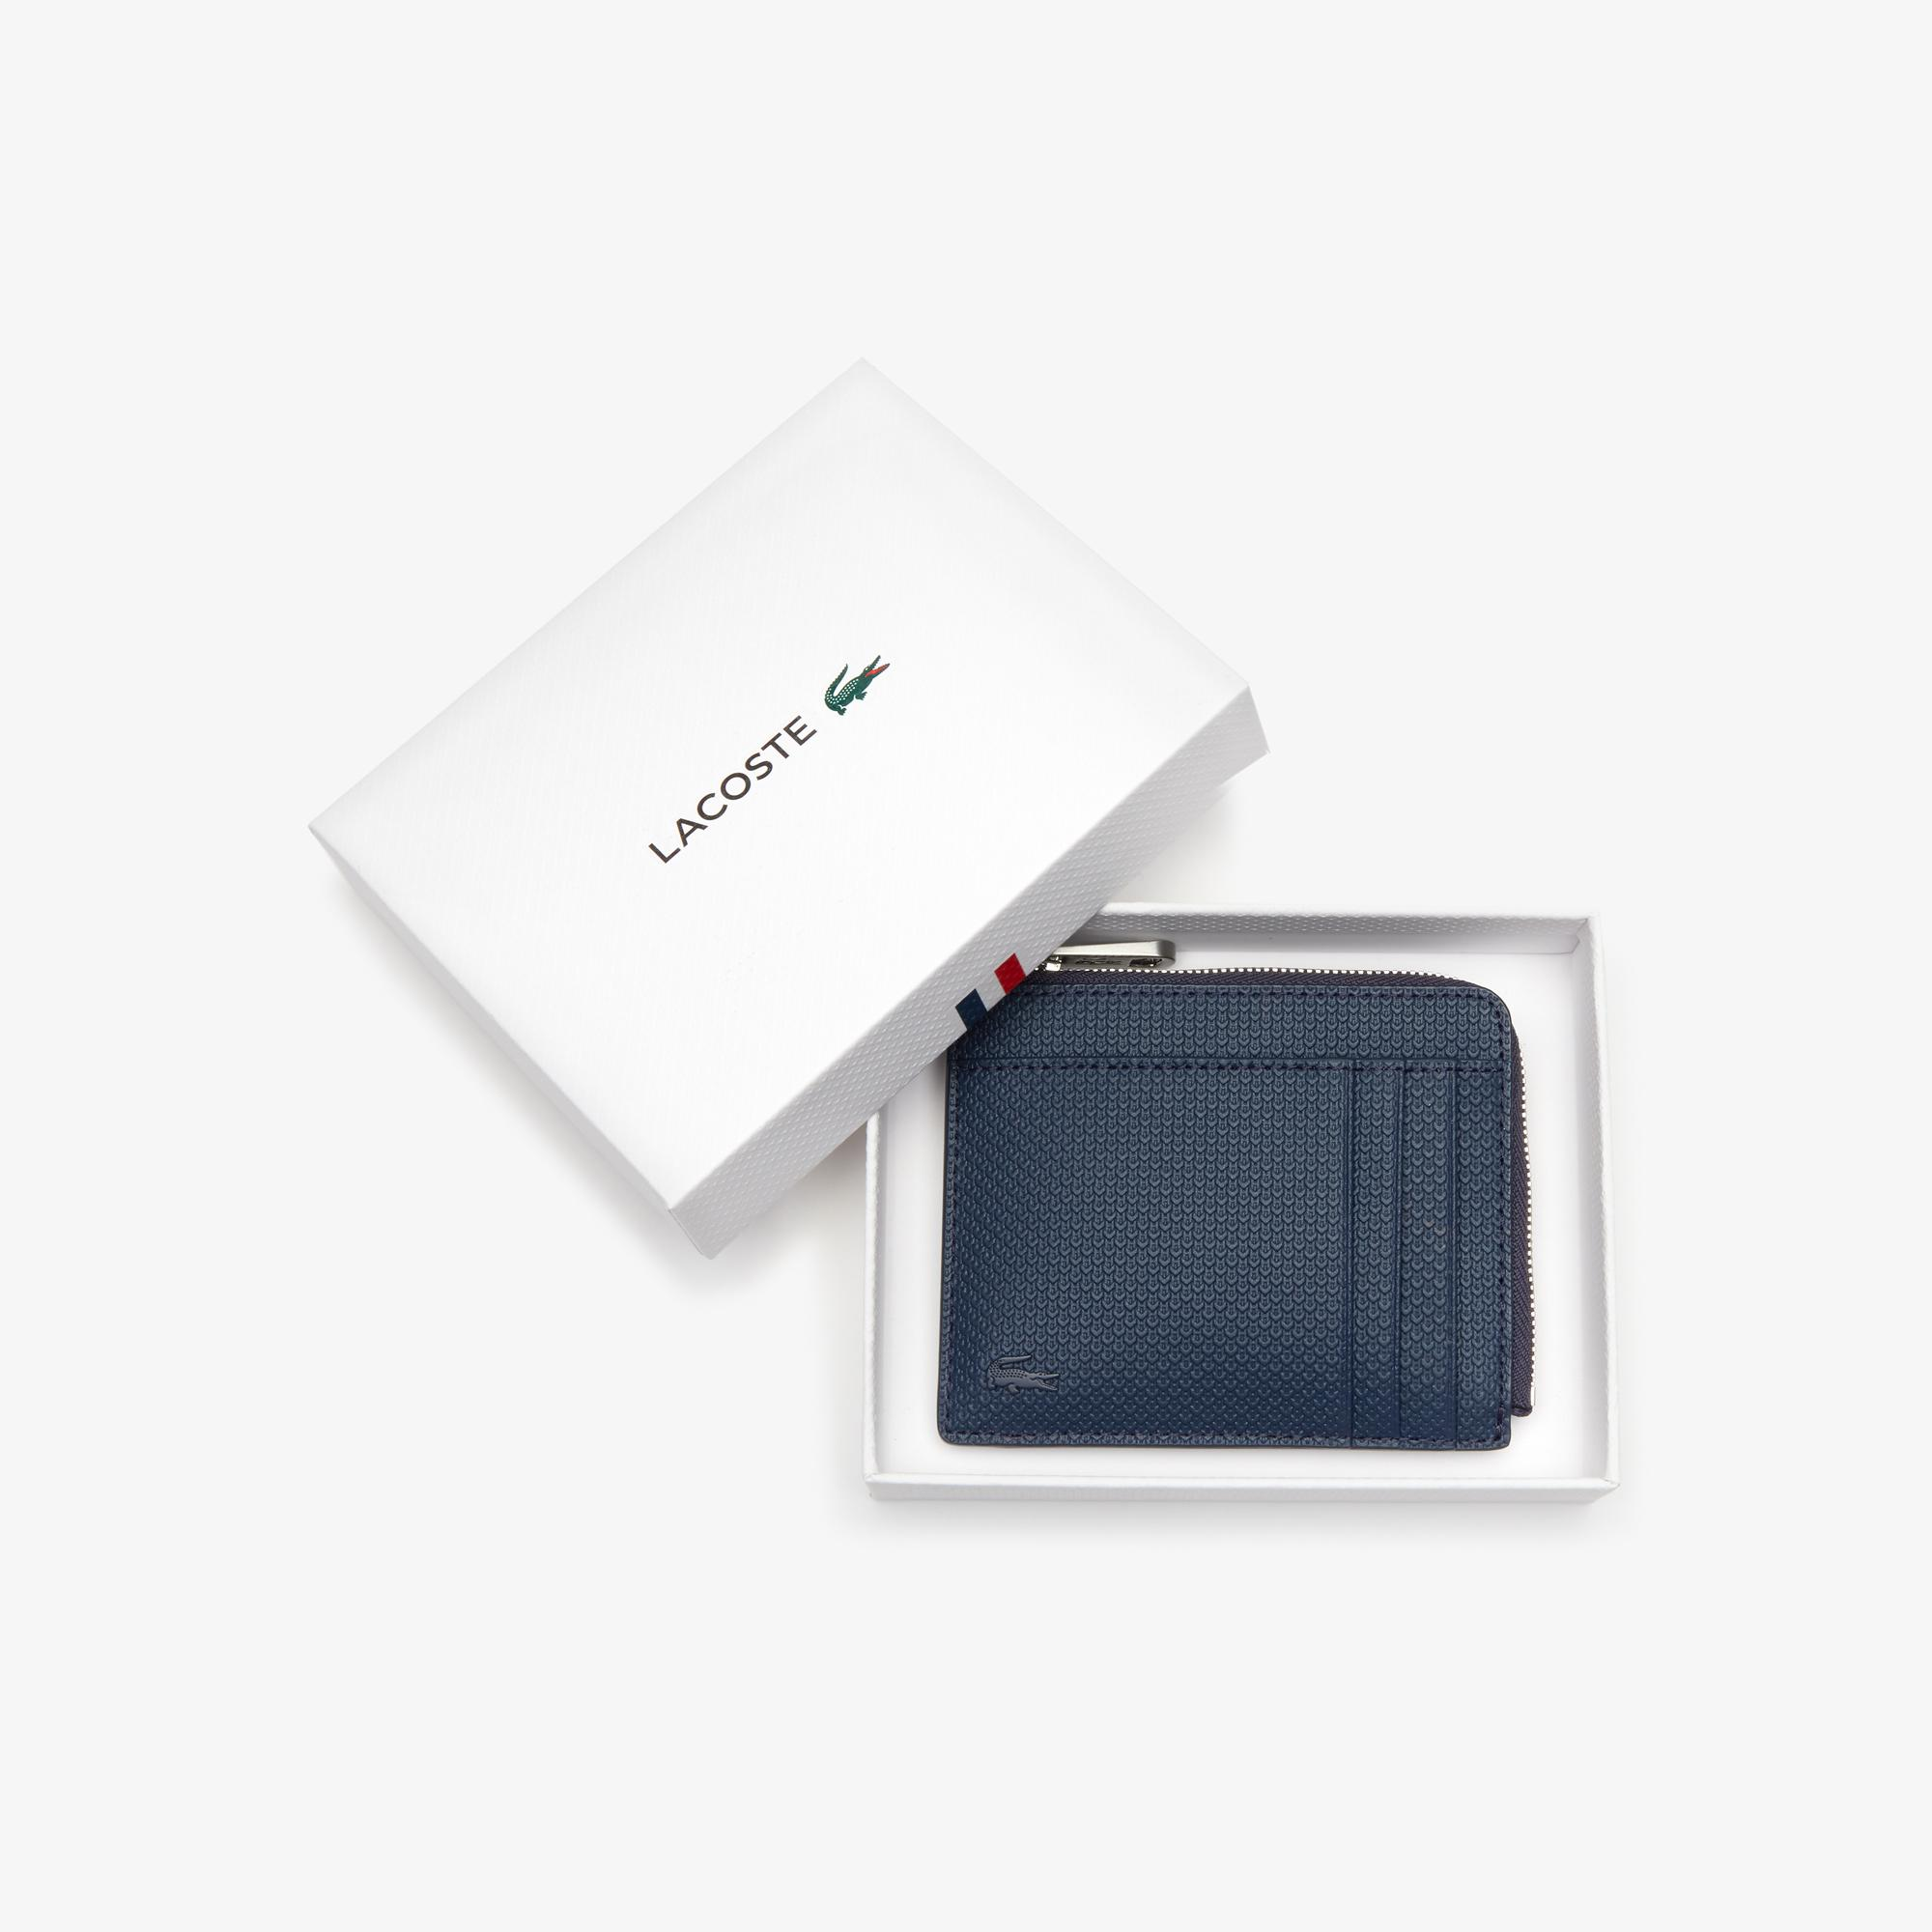 Lacoste Men's Chantaco Matte Piqué Leather Zip 4 Card Holder